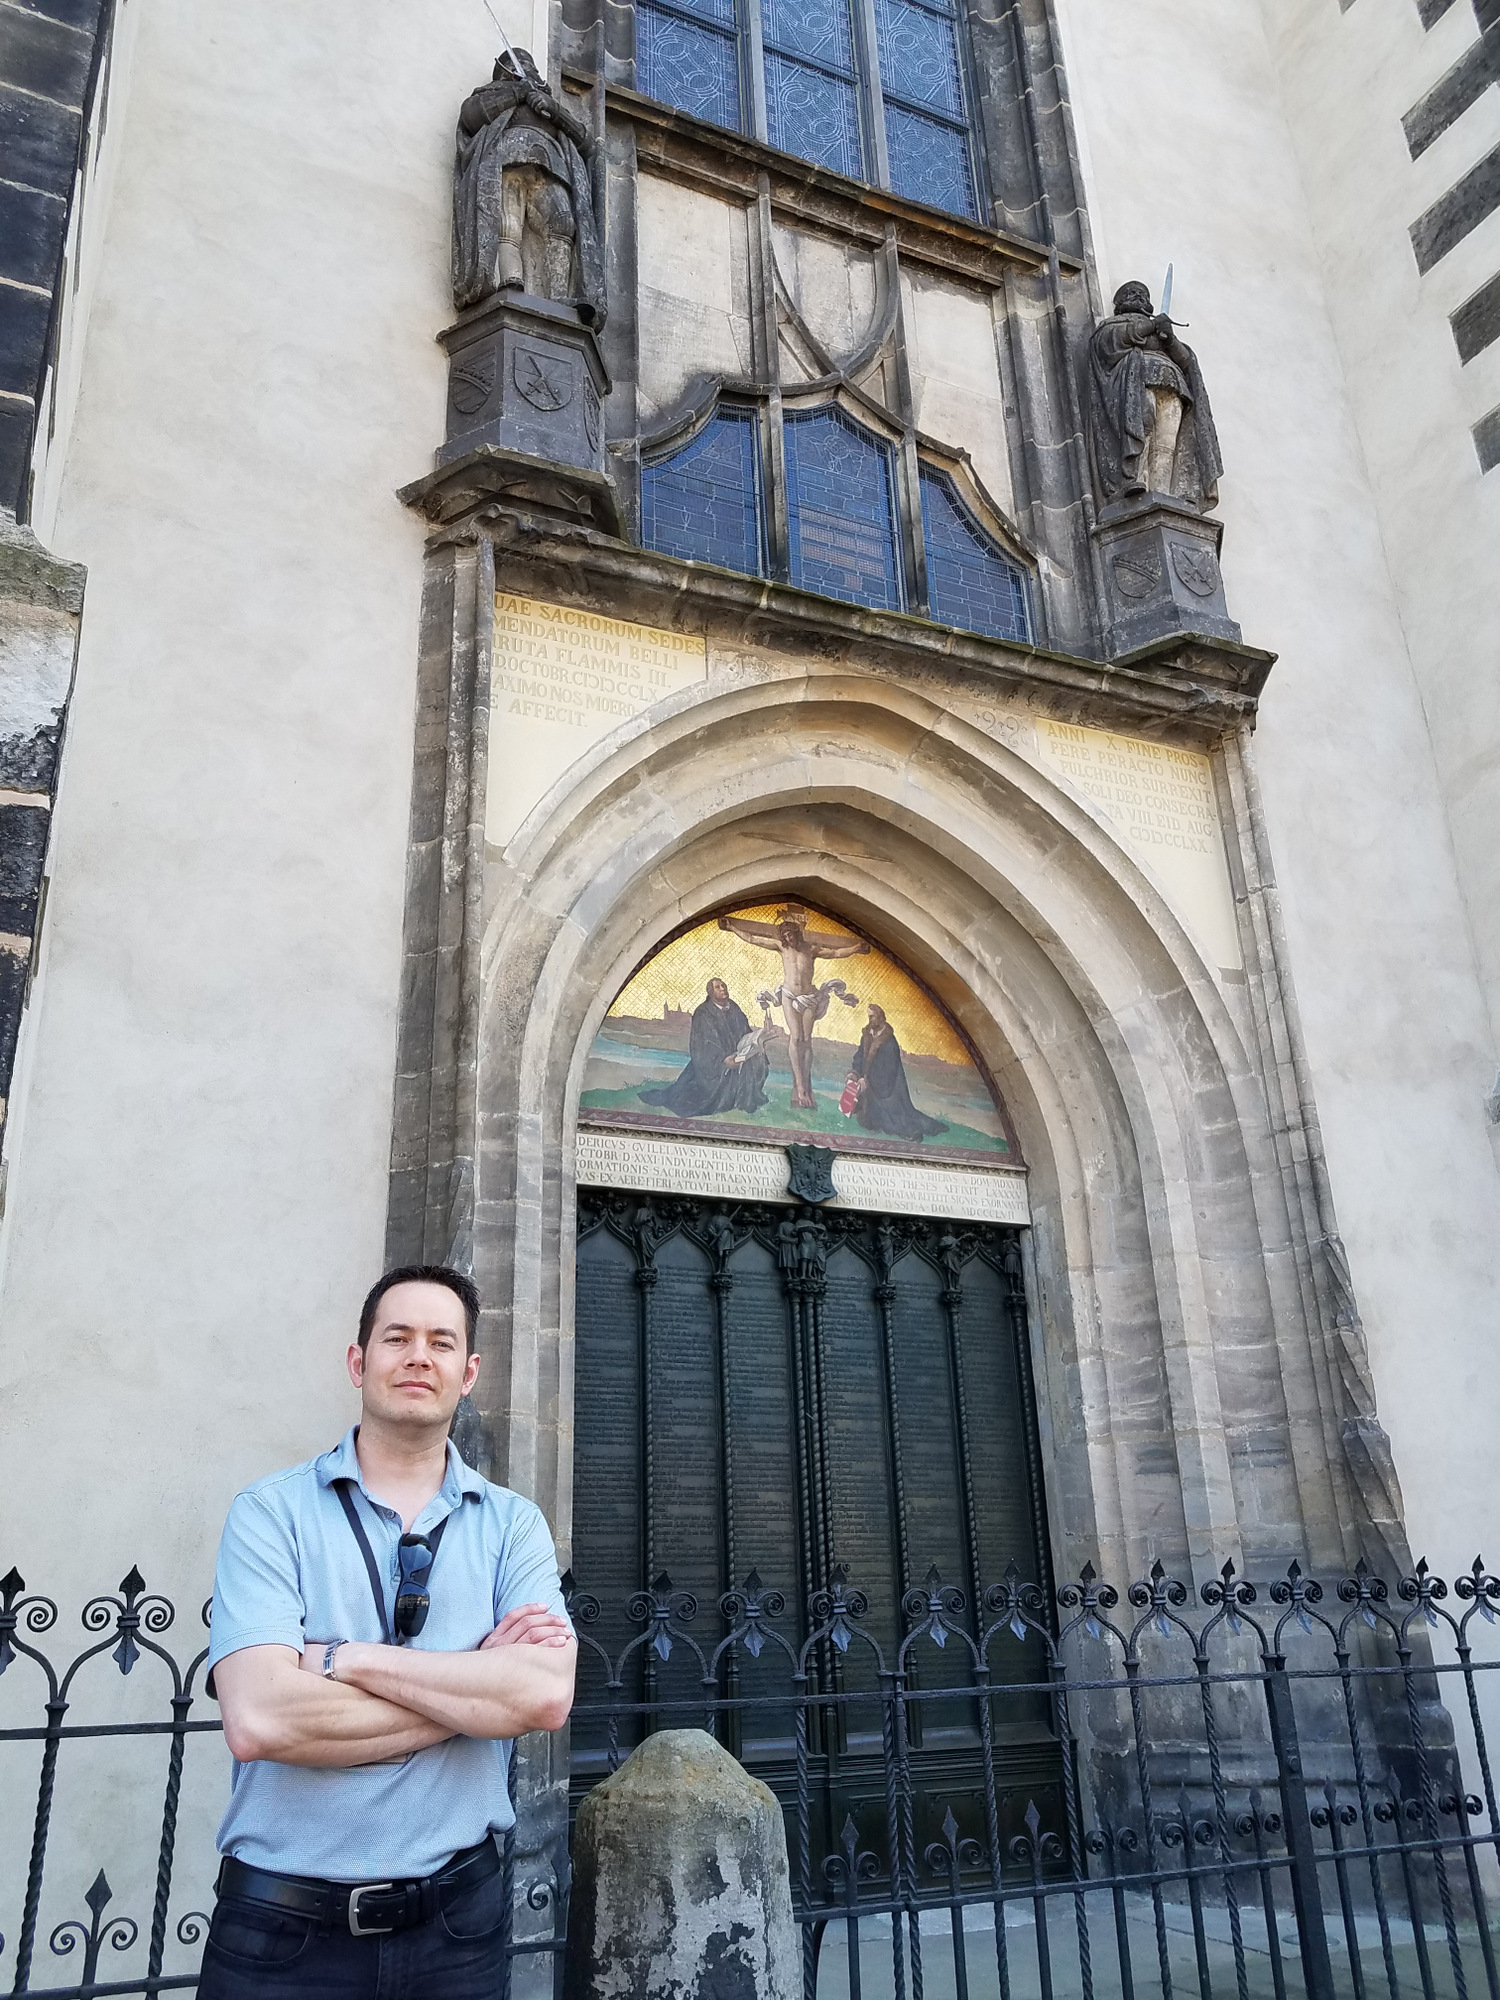 Pastor Chris stands in front of the Castle Church door that Luther nailed his 95 discussion points to.  Today those points are engraved in the door.  This is one of the most famous doors in the world.